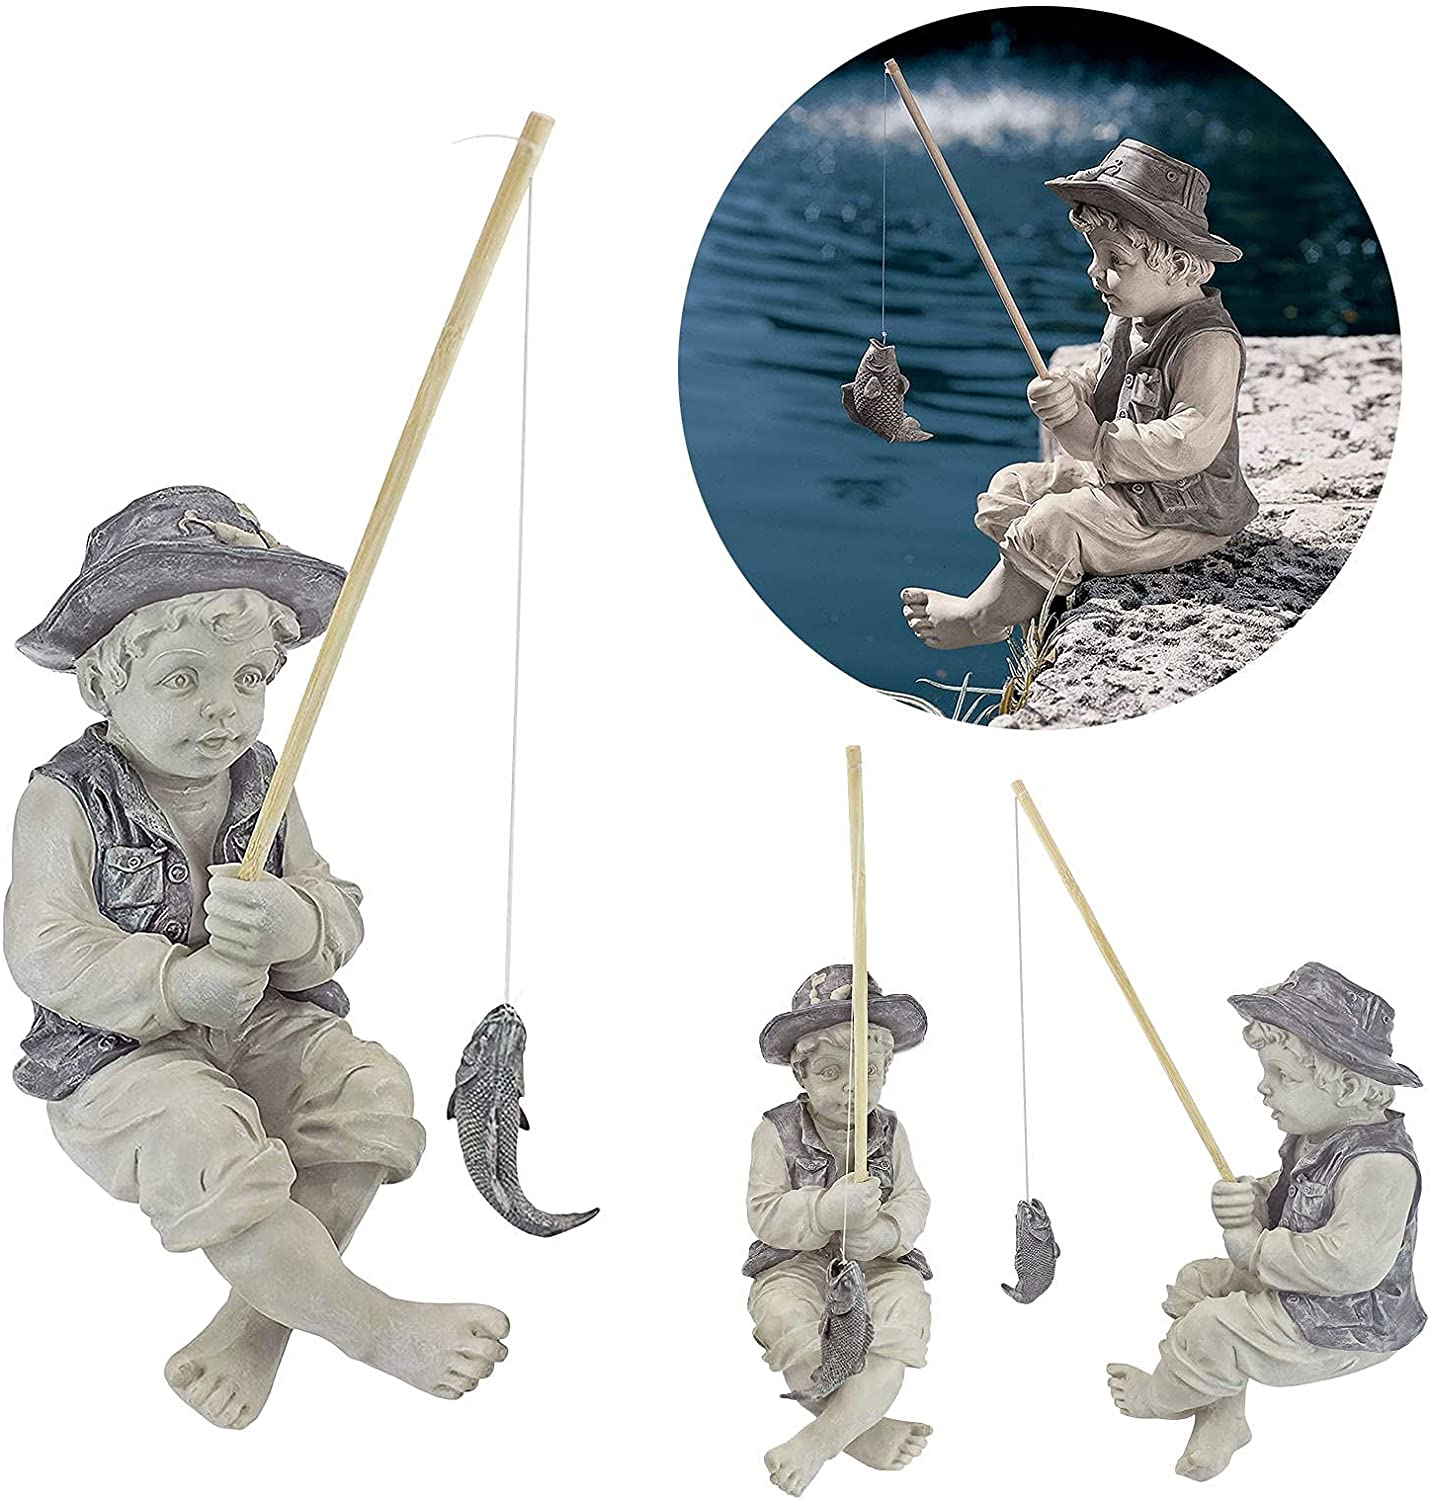 L-ELEGANT Handmade The Fishing Gnome Ornaments Decor Outdoor Lawn Pond,Fishing Boy Outdoor Statue,Resin Fisherman Garden Sculptures and Statues Garden Figures Figurines-Fishing boy 15cm(5.9inch)